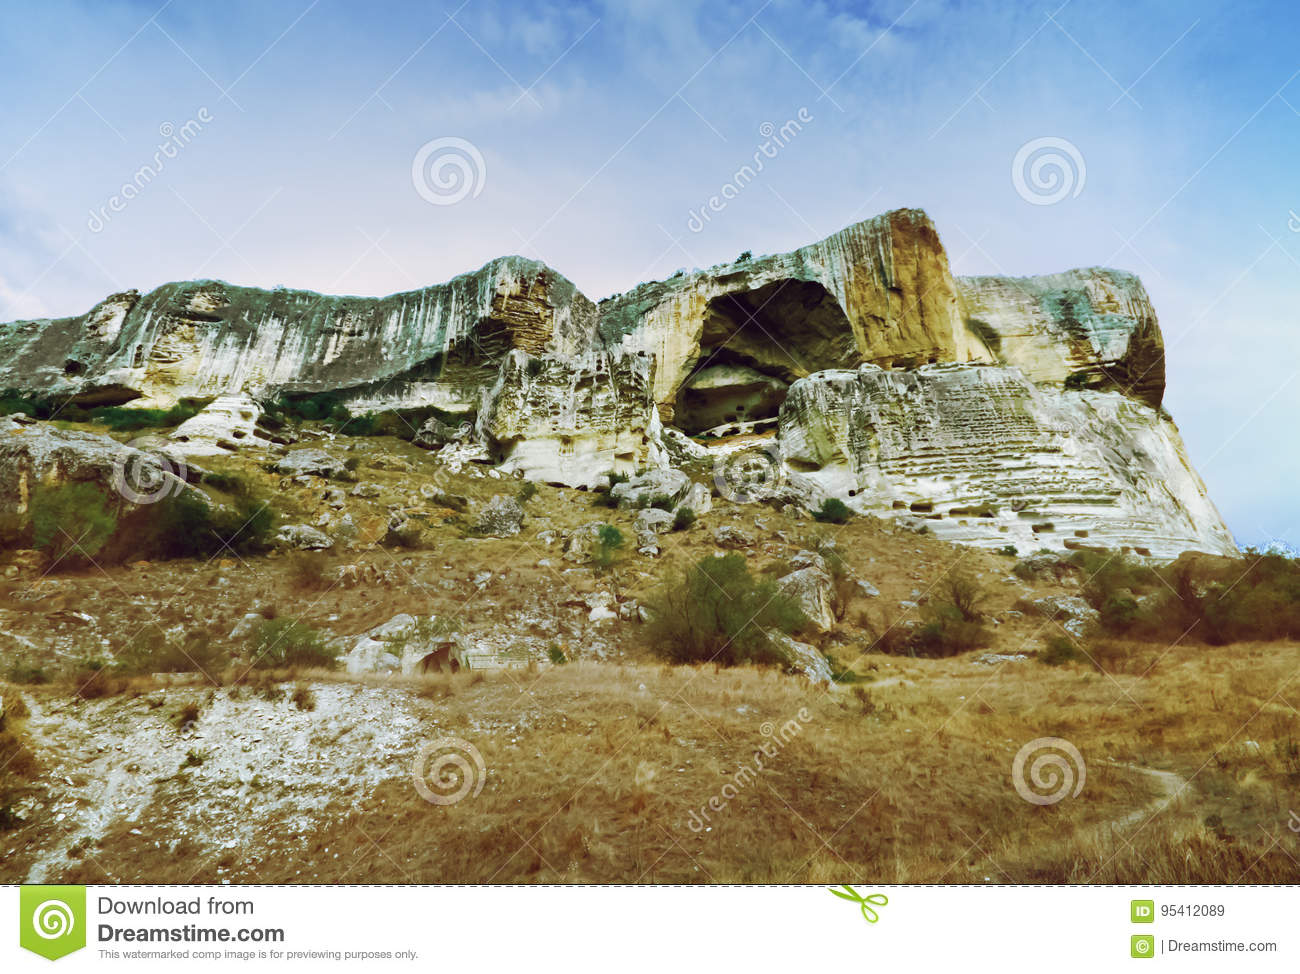 Cave city Chufut-Kale in Crimea: description, history, excursions 11